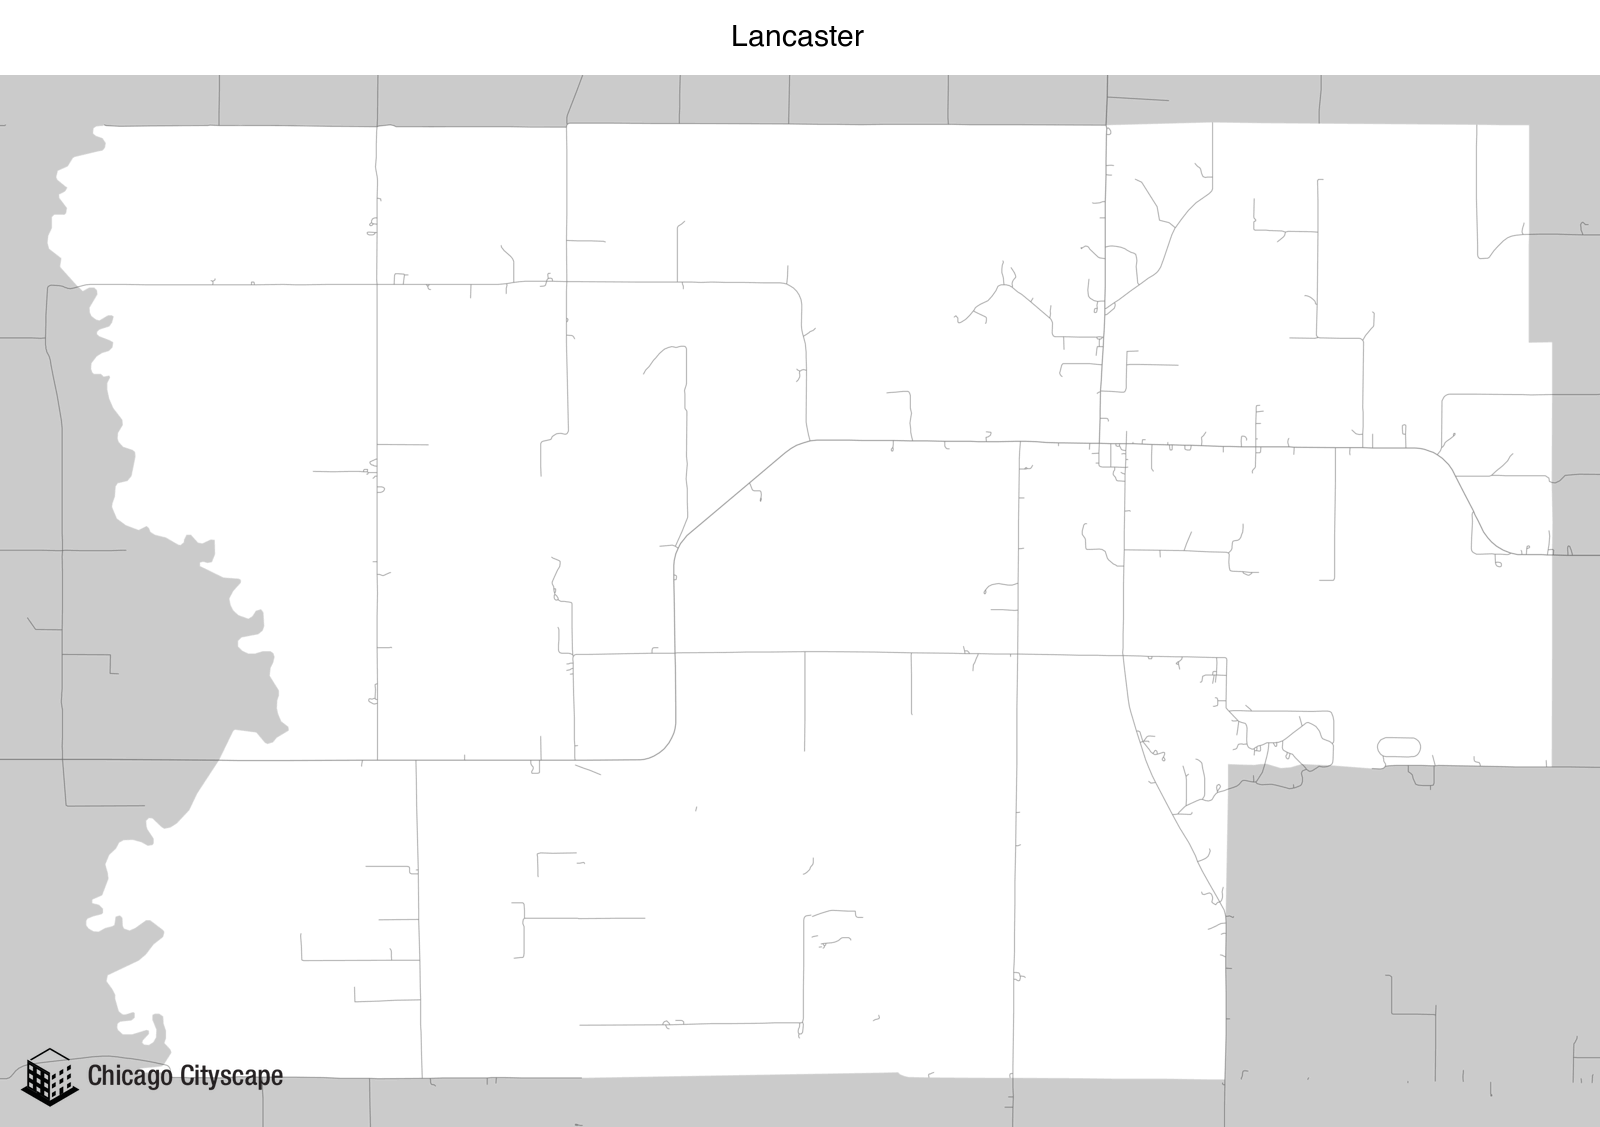 Map Of Lancaster County Sc, Map Of Lancaster Designed By Chicago Cityscape, Map Of Lancaster County Sc